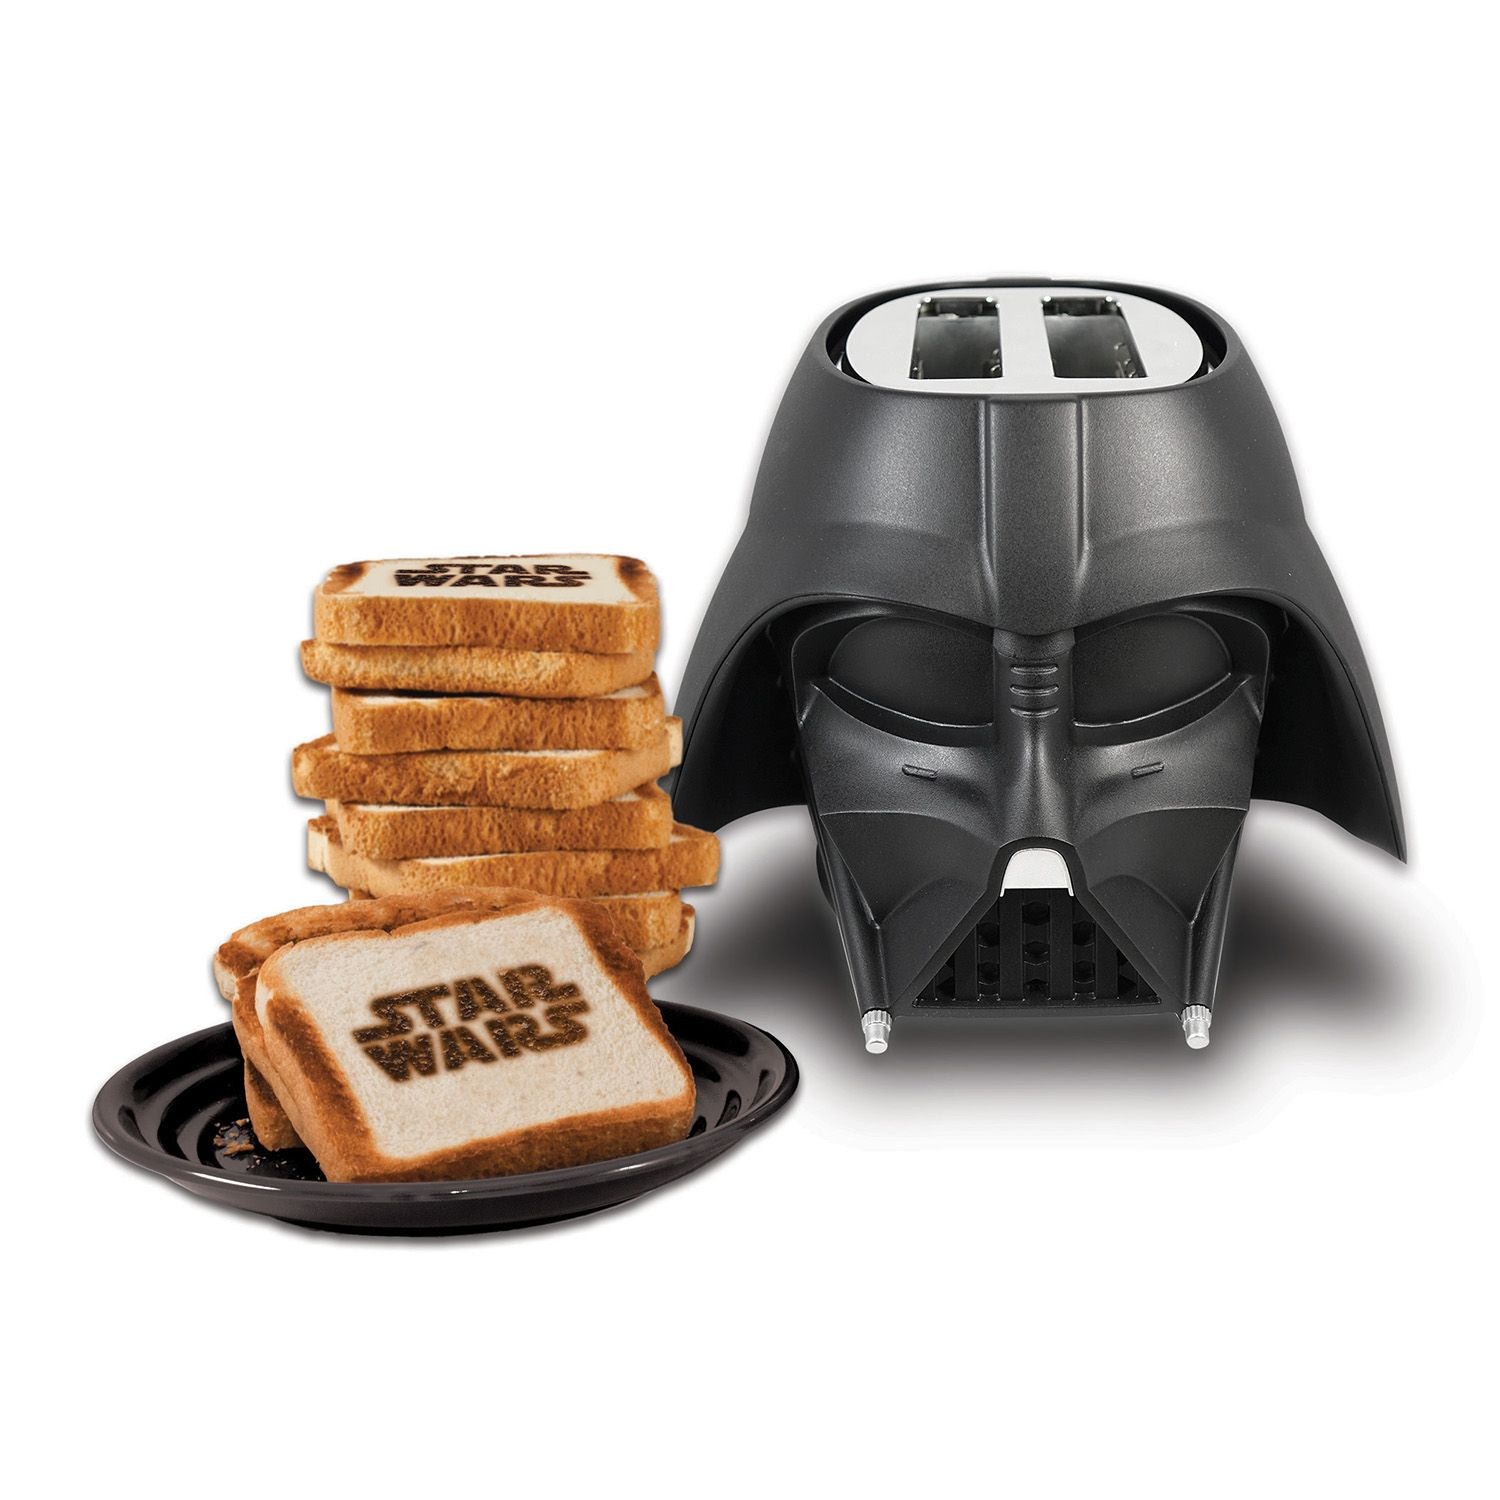 Star Wars Darth Vader 2 Slice Toaster Black Brand